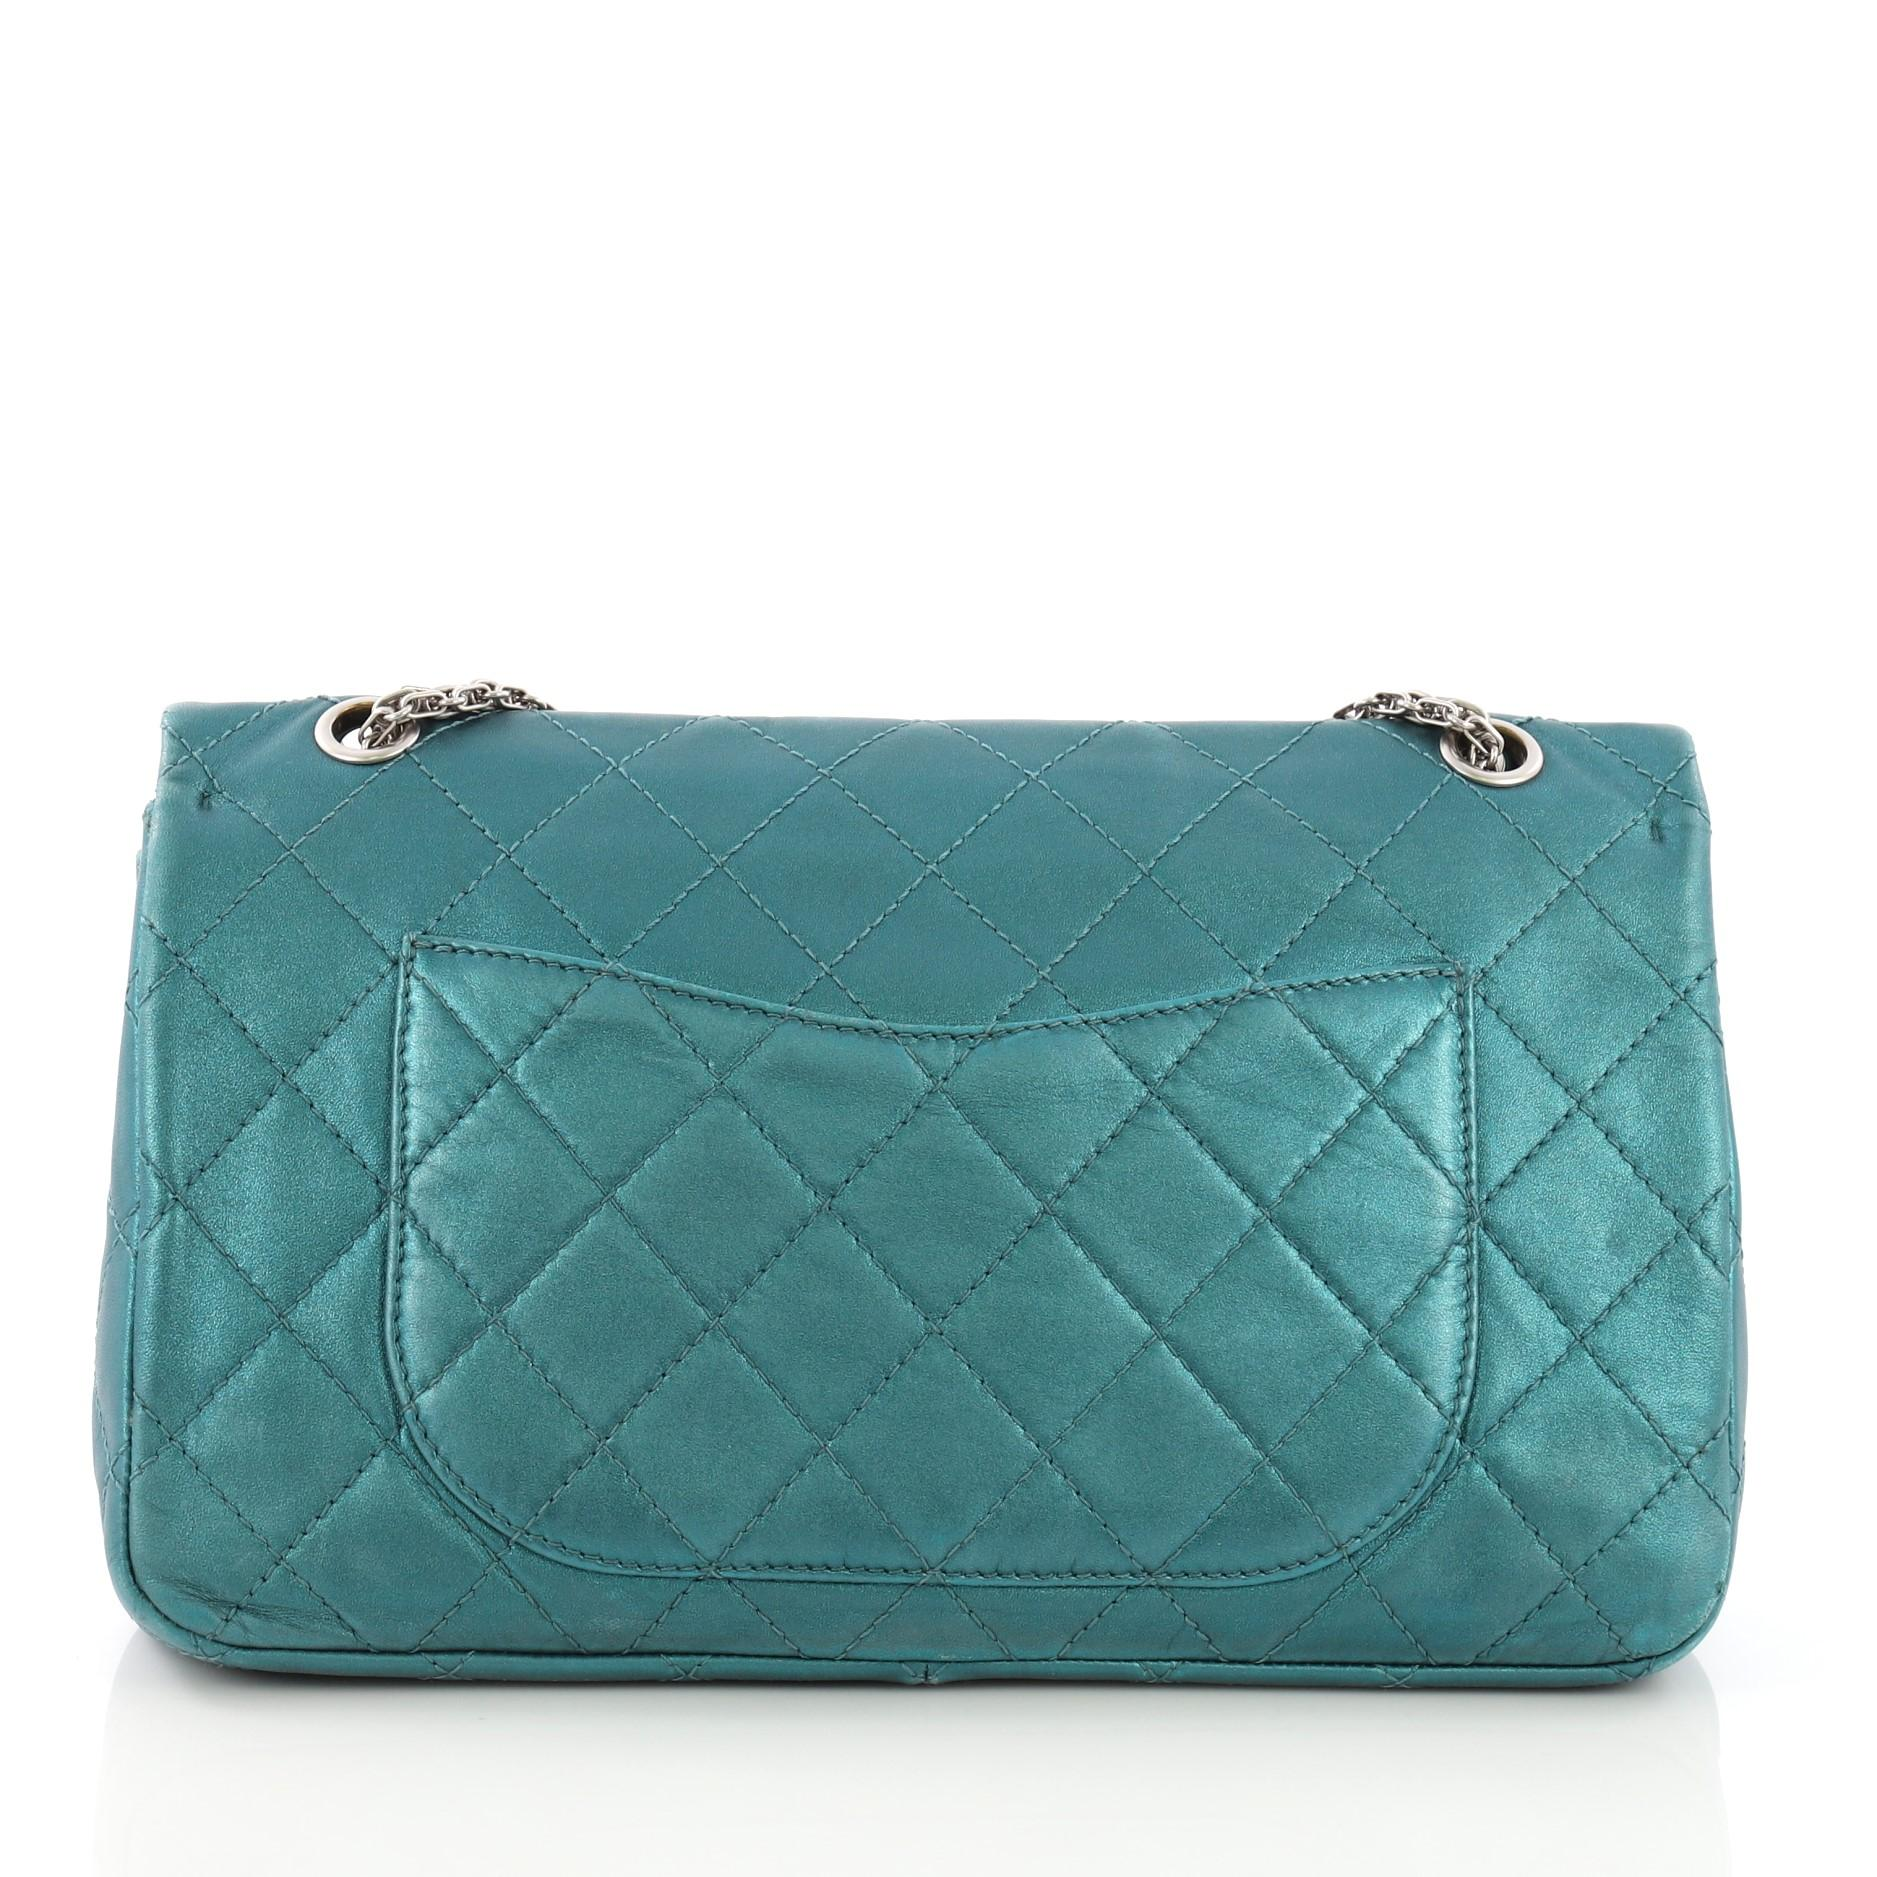 2a24c377b466d6 Chanel Reissue 2.55 Handbag Quilted Metallic Aged Calfskin 227 For Sale at  1stdibs